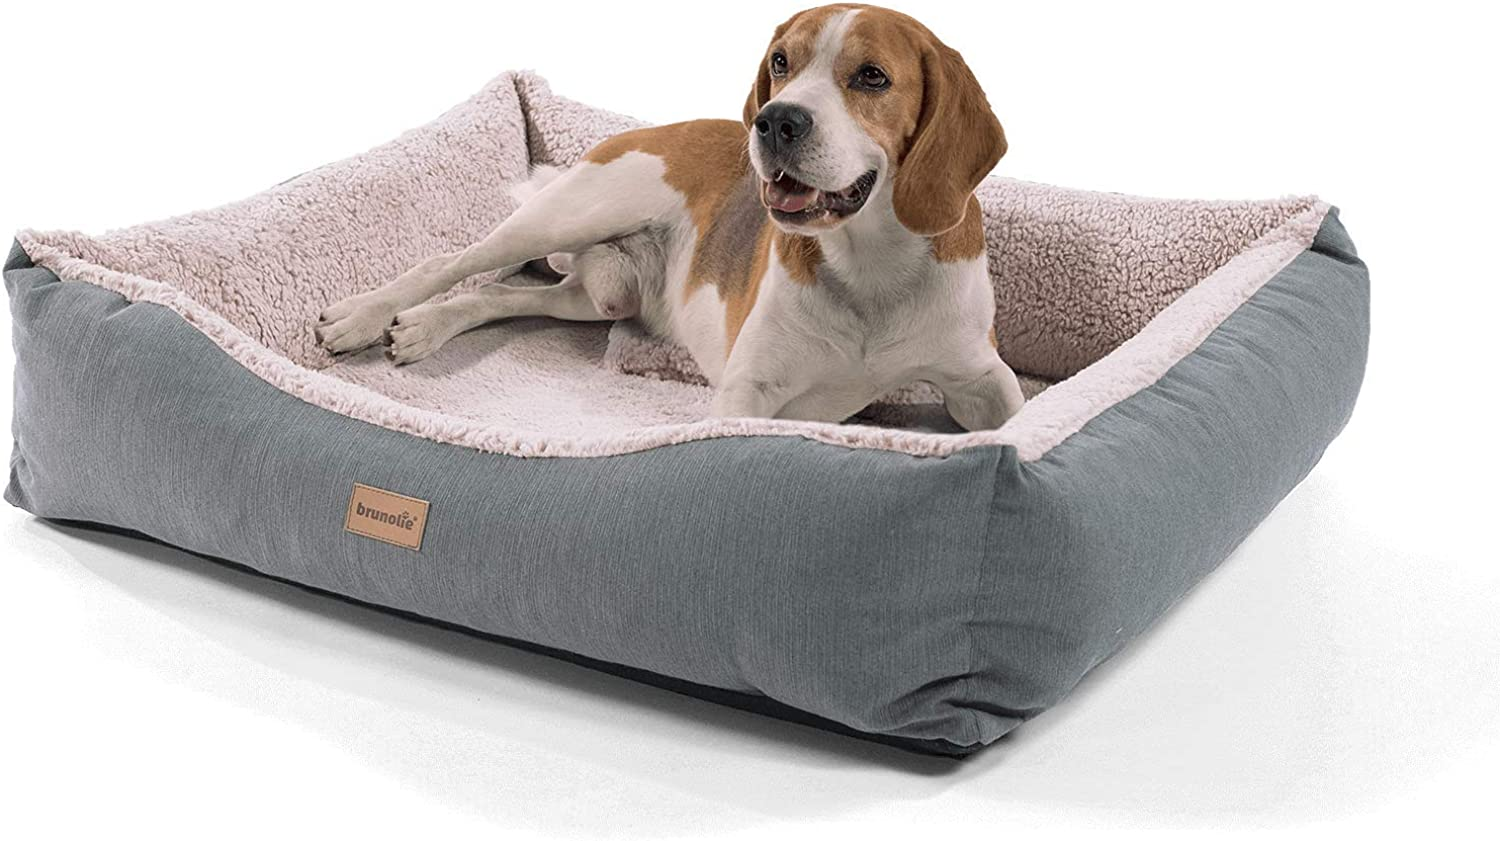 """Brunolie """"Emma"""" medium dog basket in grey – washable, hygienic and antislip dog bed with cosy plush and pillow, size M"""